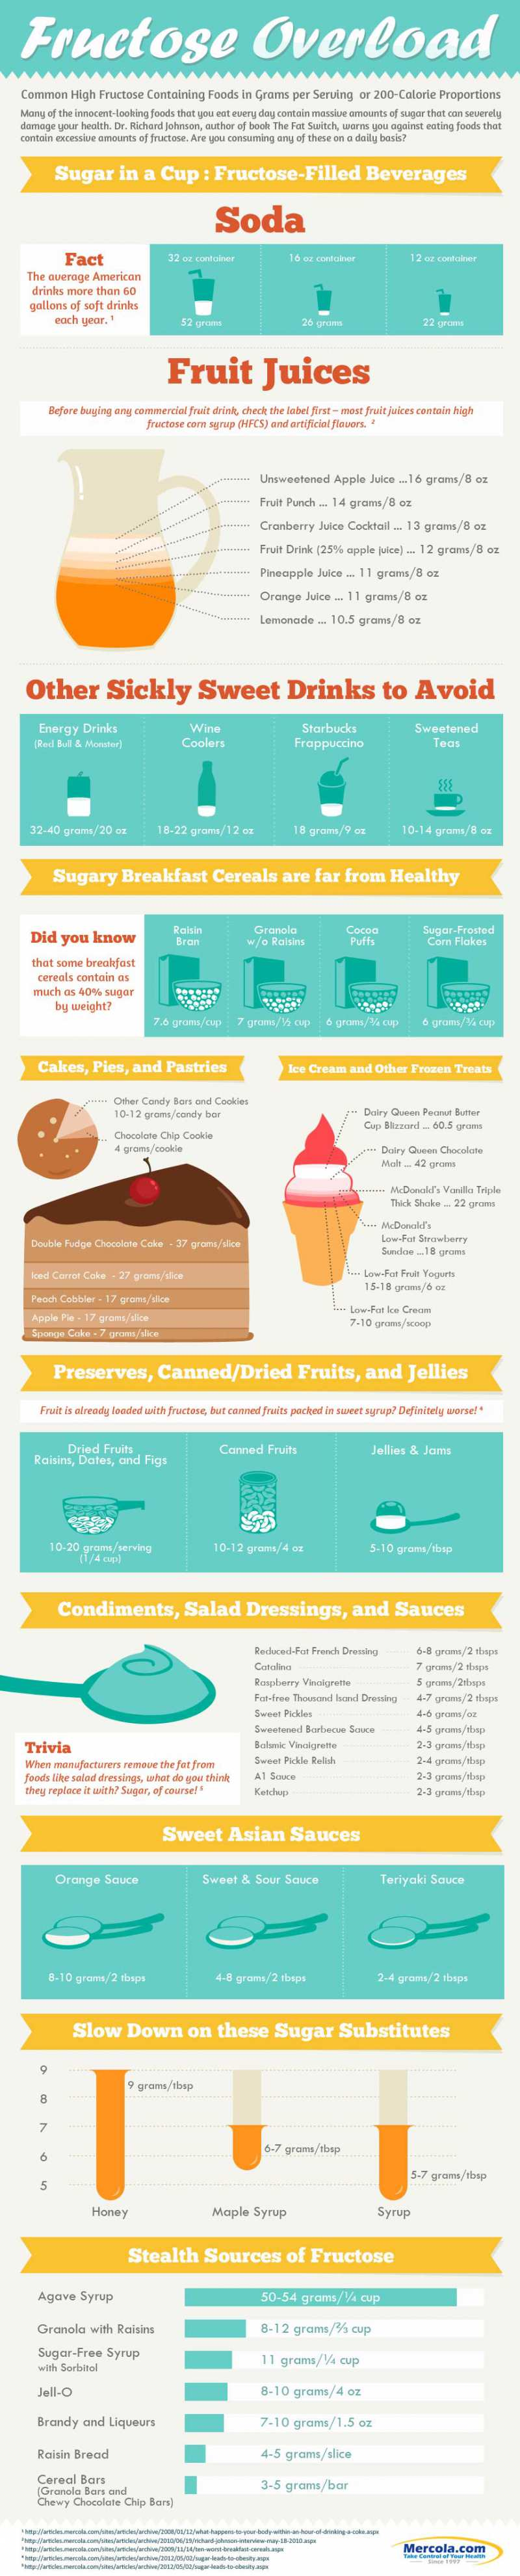 Foods High in Sugar - Fructose Overload Infographic